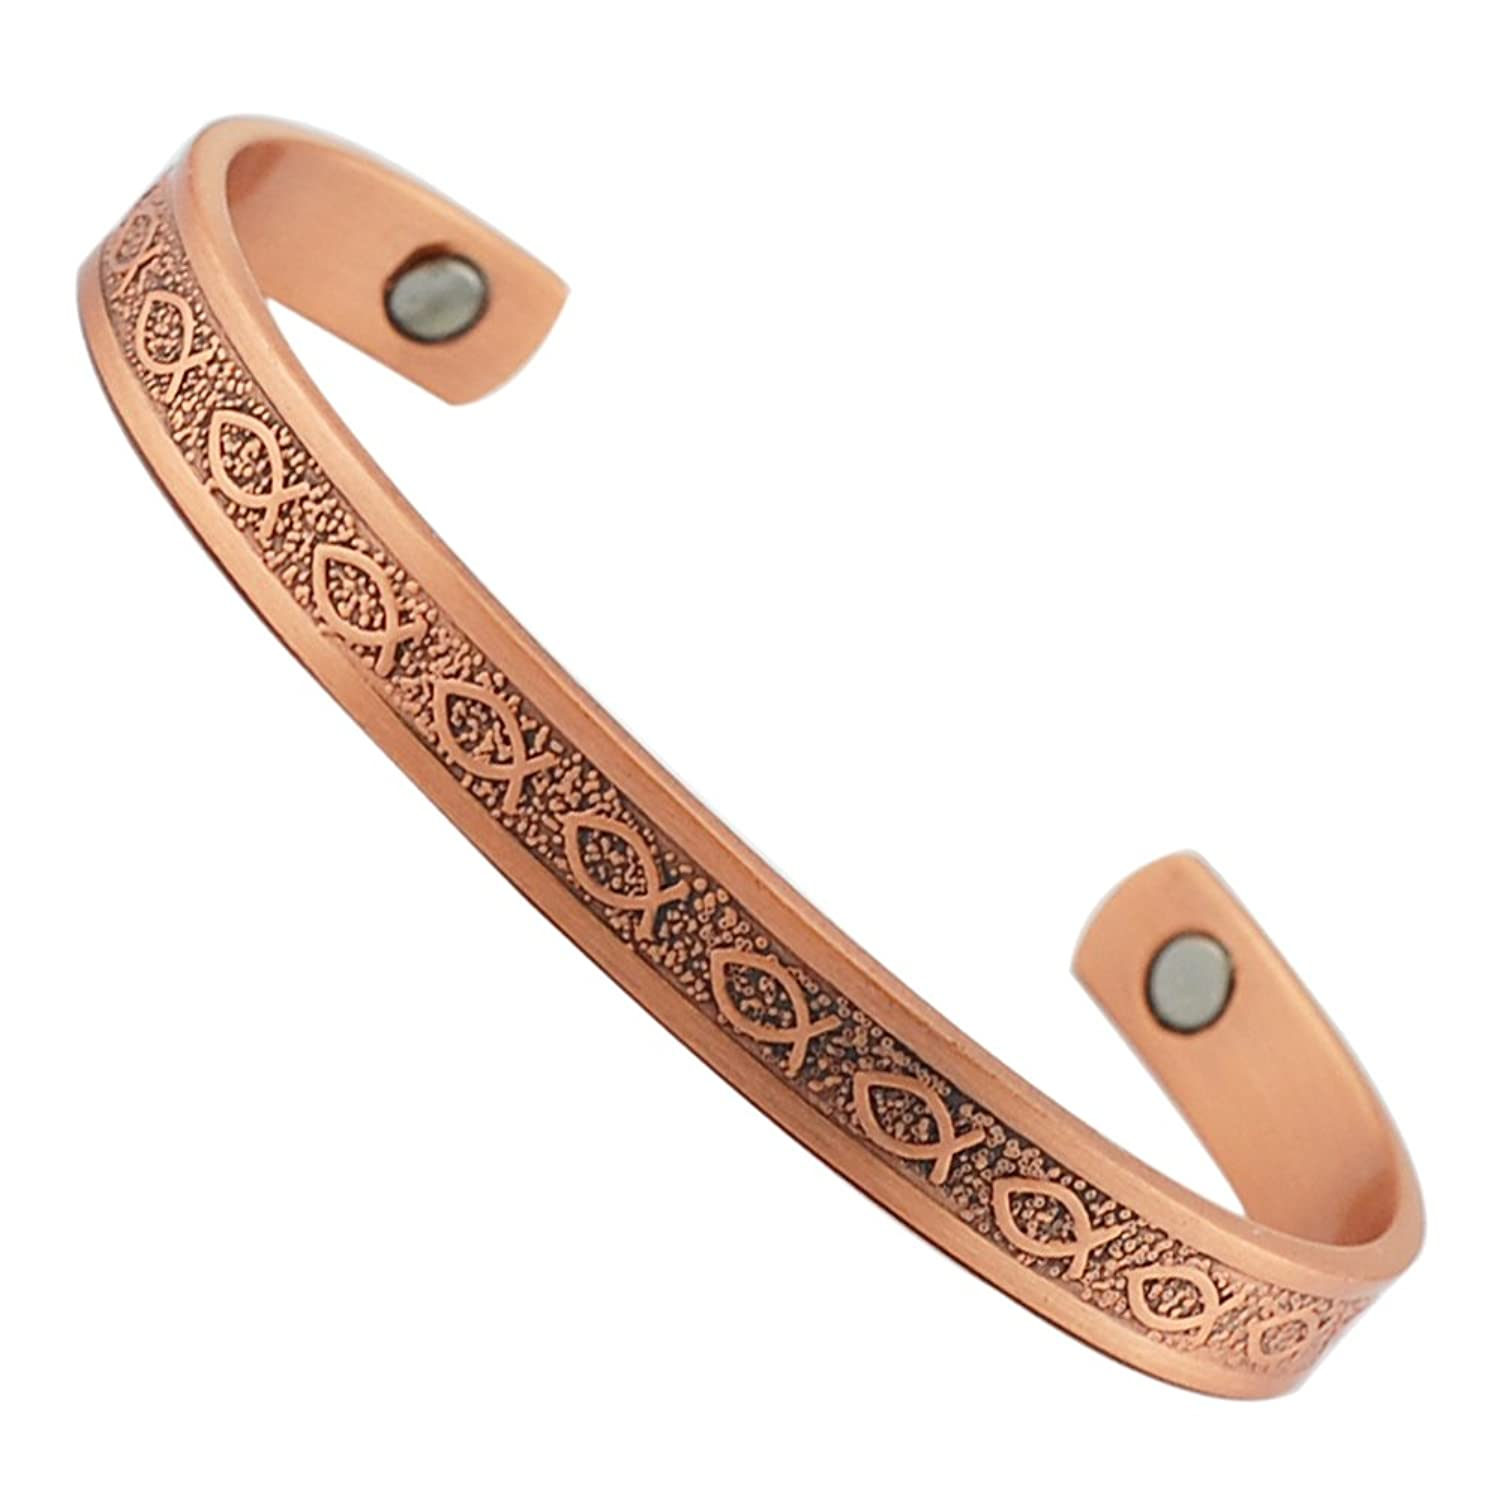 Sufferers wear copper jewelry in the hopes of easing symptoms - Amazon Com Cpb 0018 Wollet Jewelry 6 5 Magnetic Copper Bracelet For Arthritis For Women Jewelry